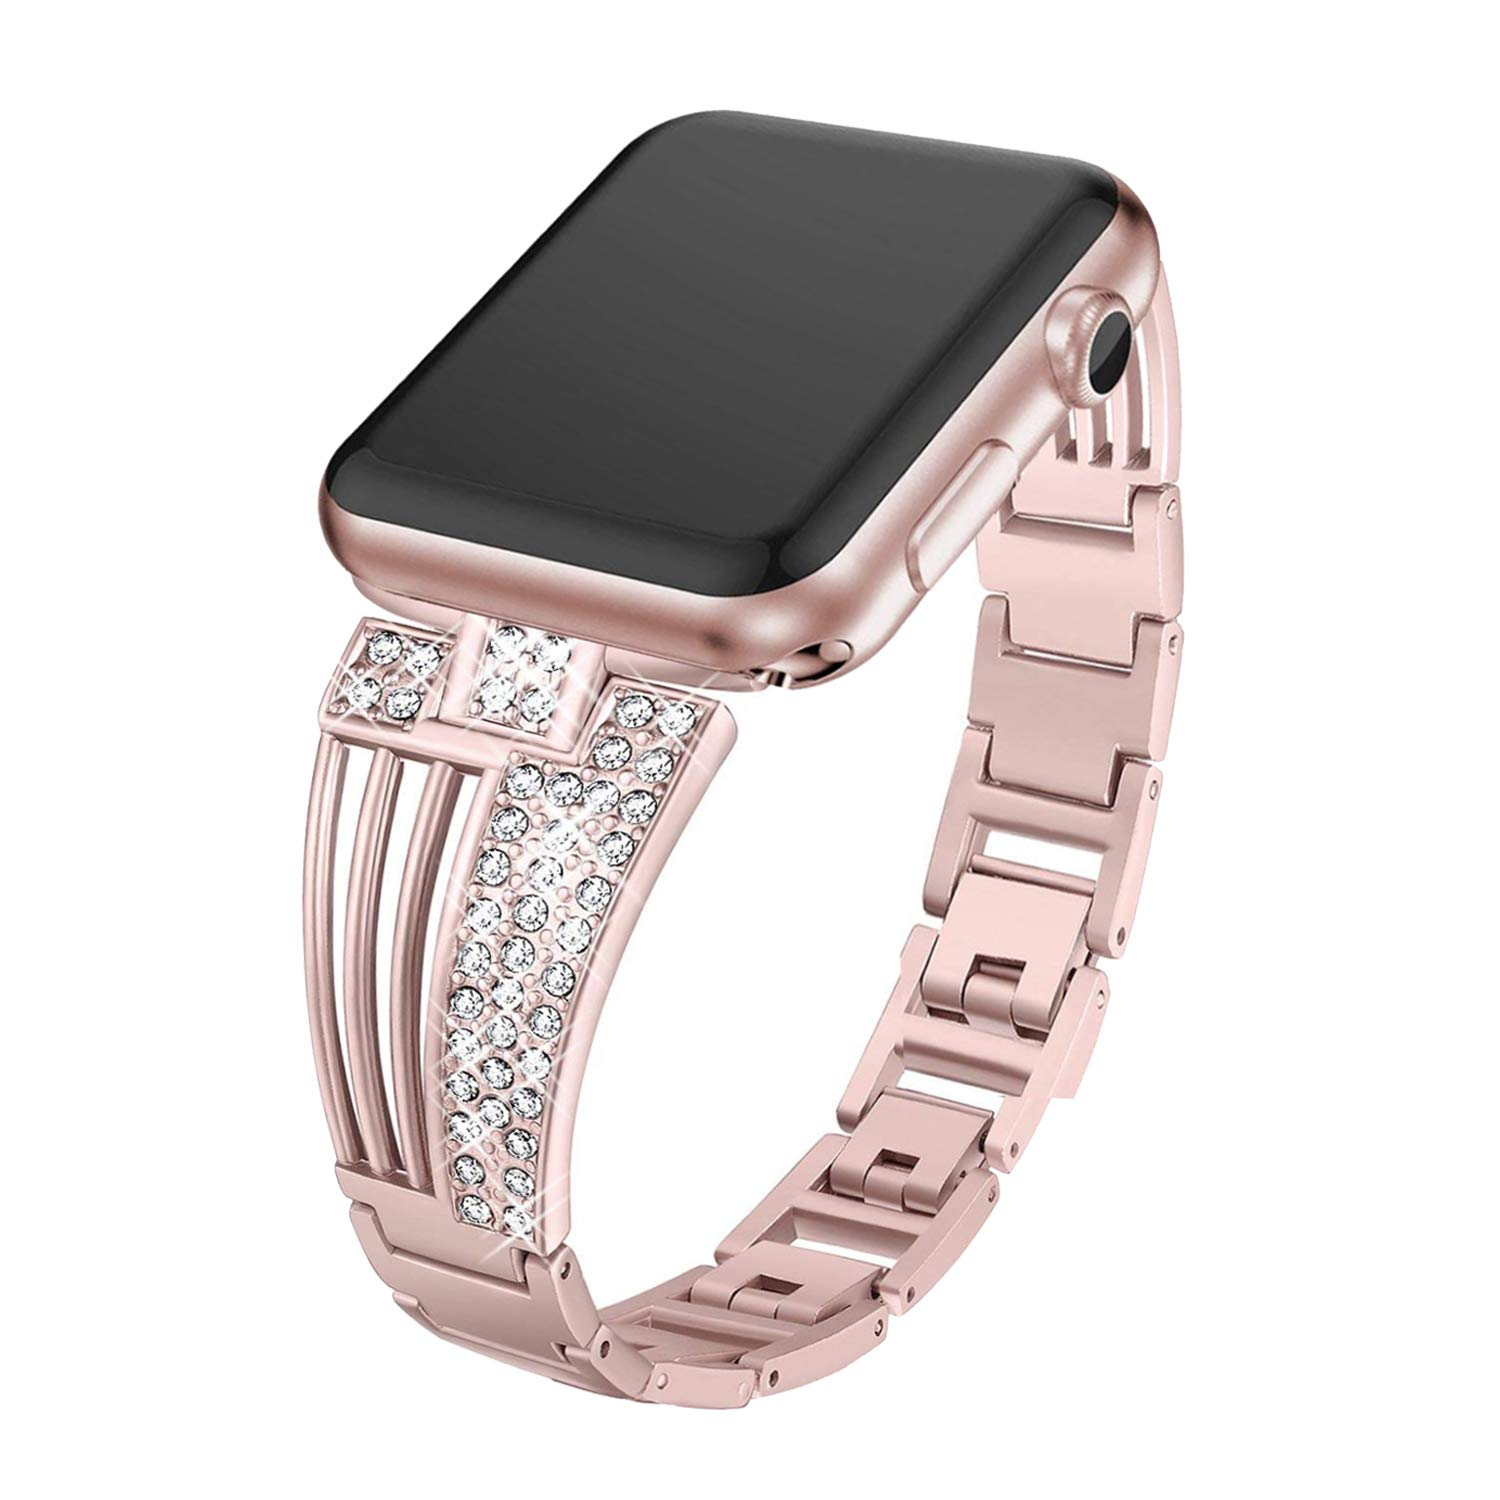 Inno-Huntz Jewelry Bling Band Compatible for Apple Watch Band 38mm 40mm Stainless Steel Replacement for Iwatch Series 4, Series 3, Series 2, 1 Crystal Rhinestone Diamonds Bracelet for Women Rose Gold